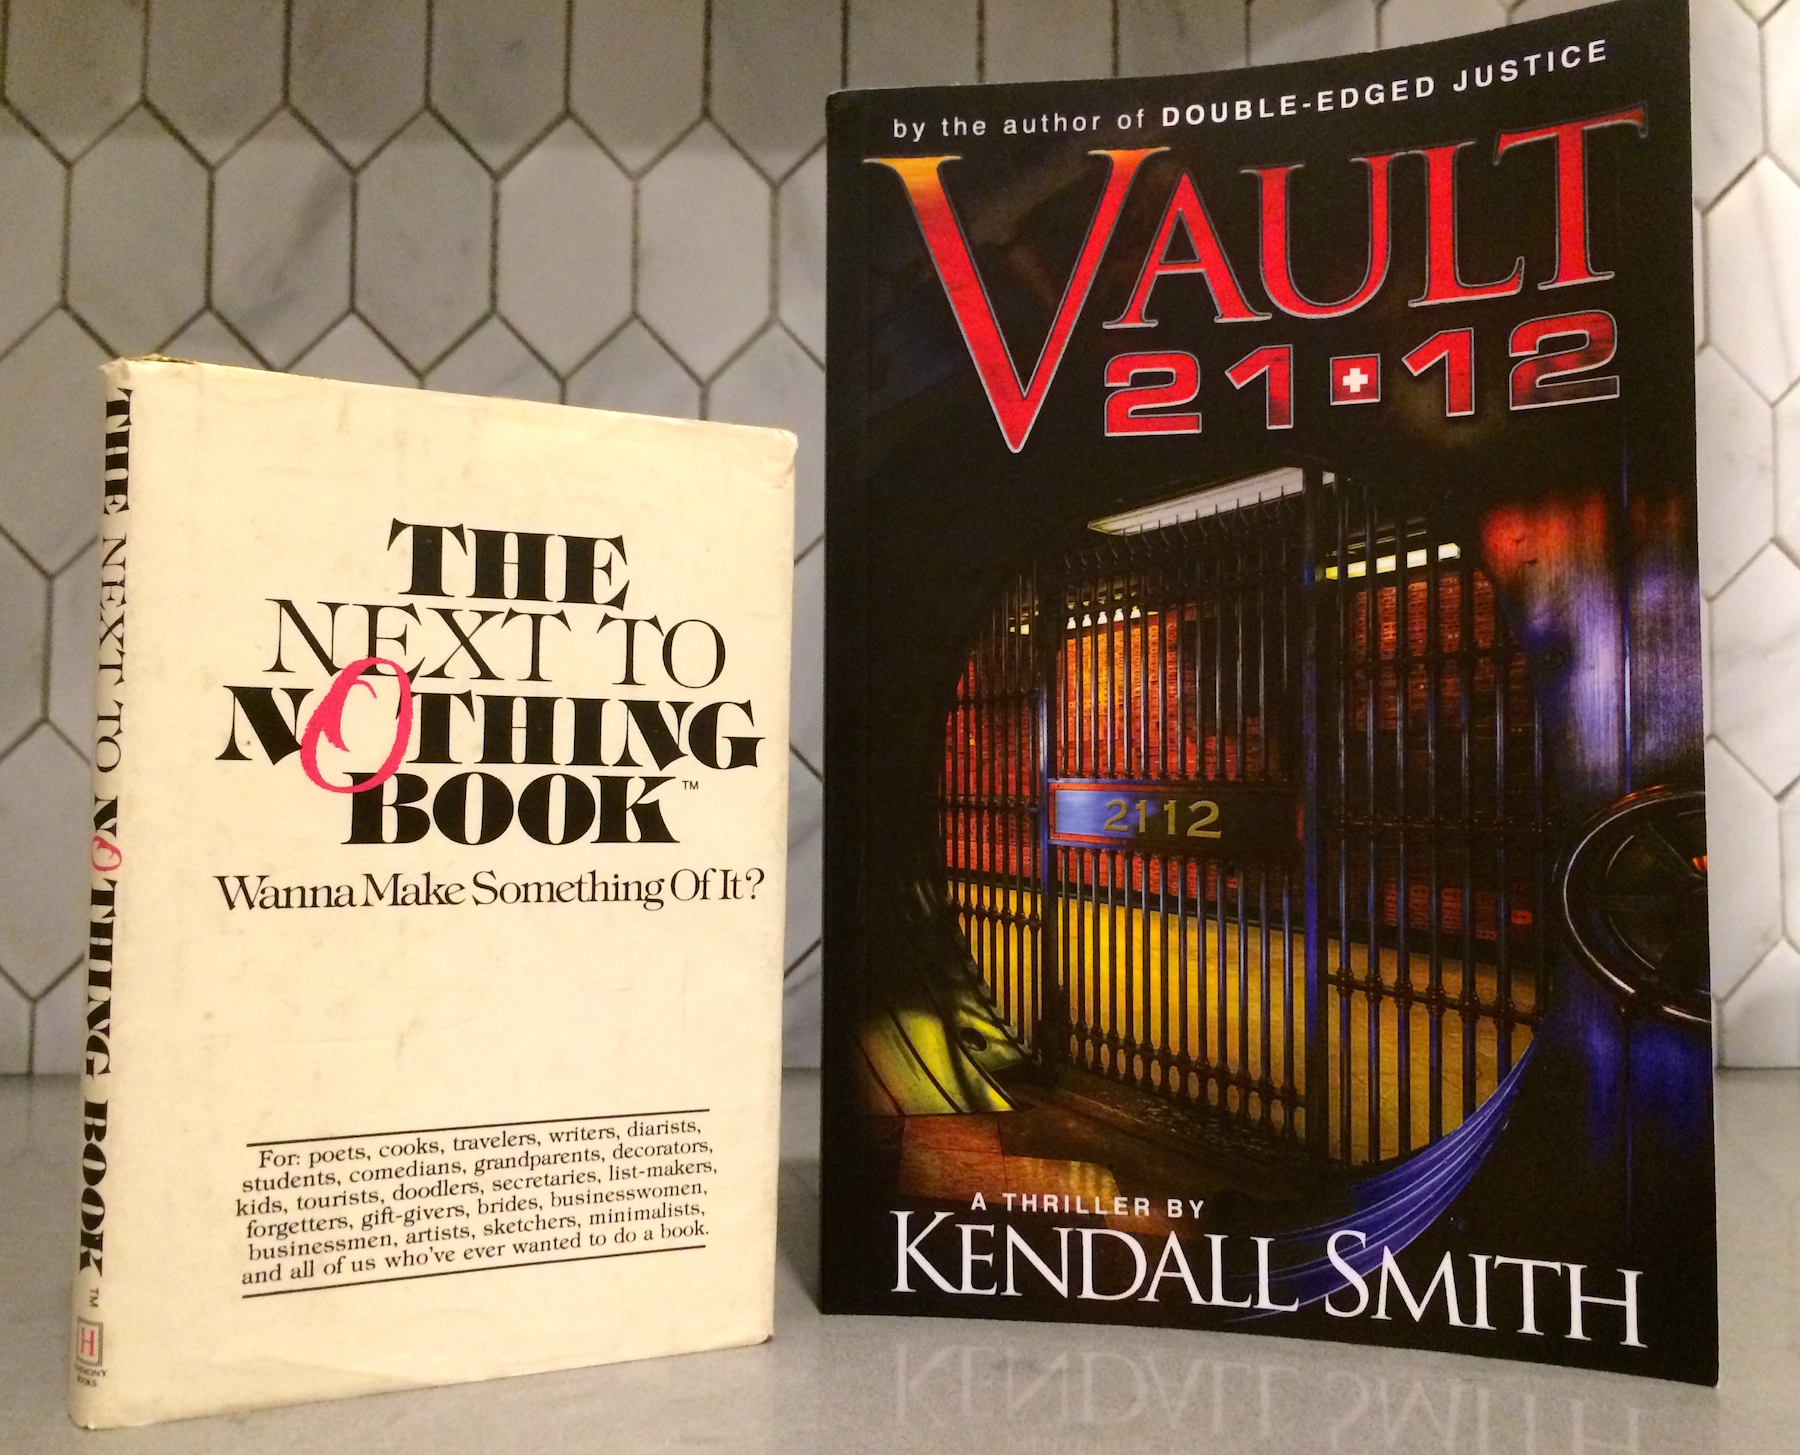 A book that inspired the author, and his latest thriller, Vault 21-12